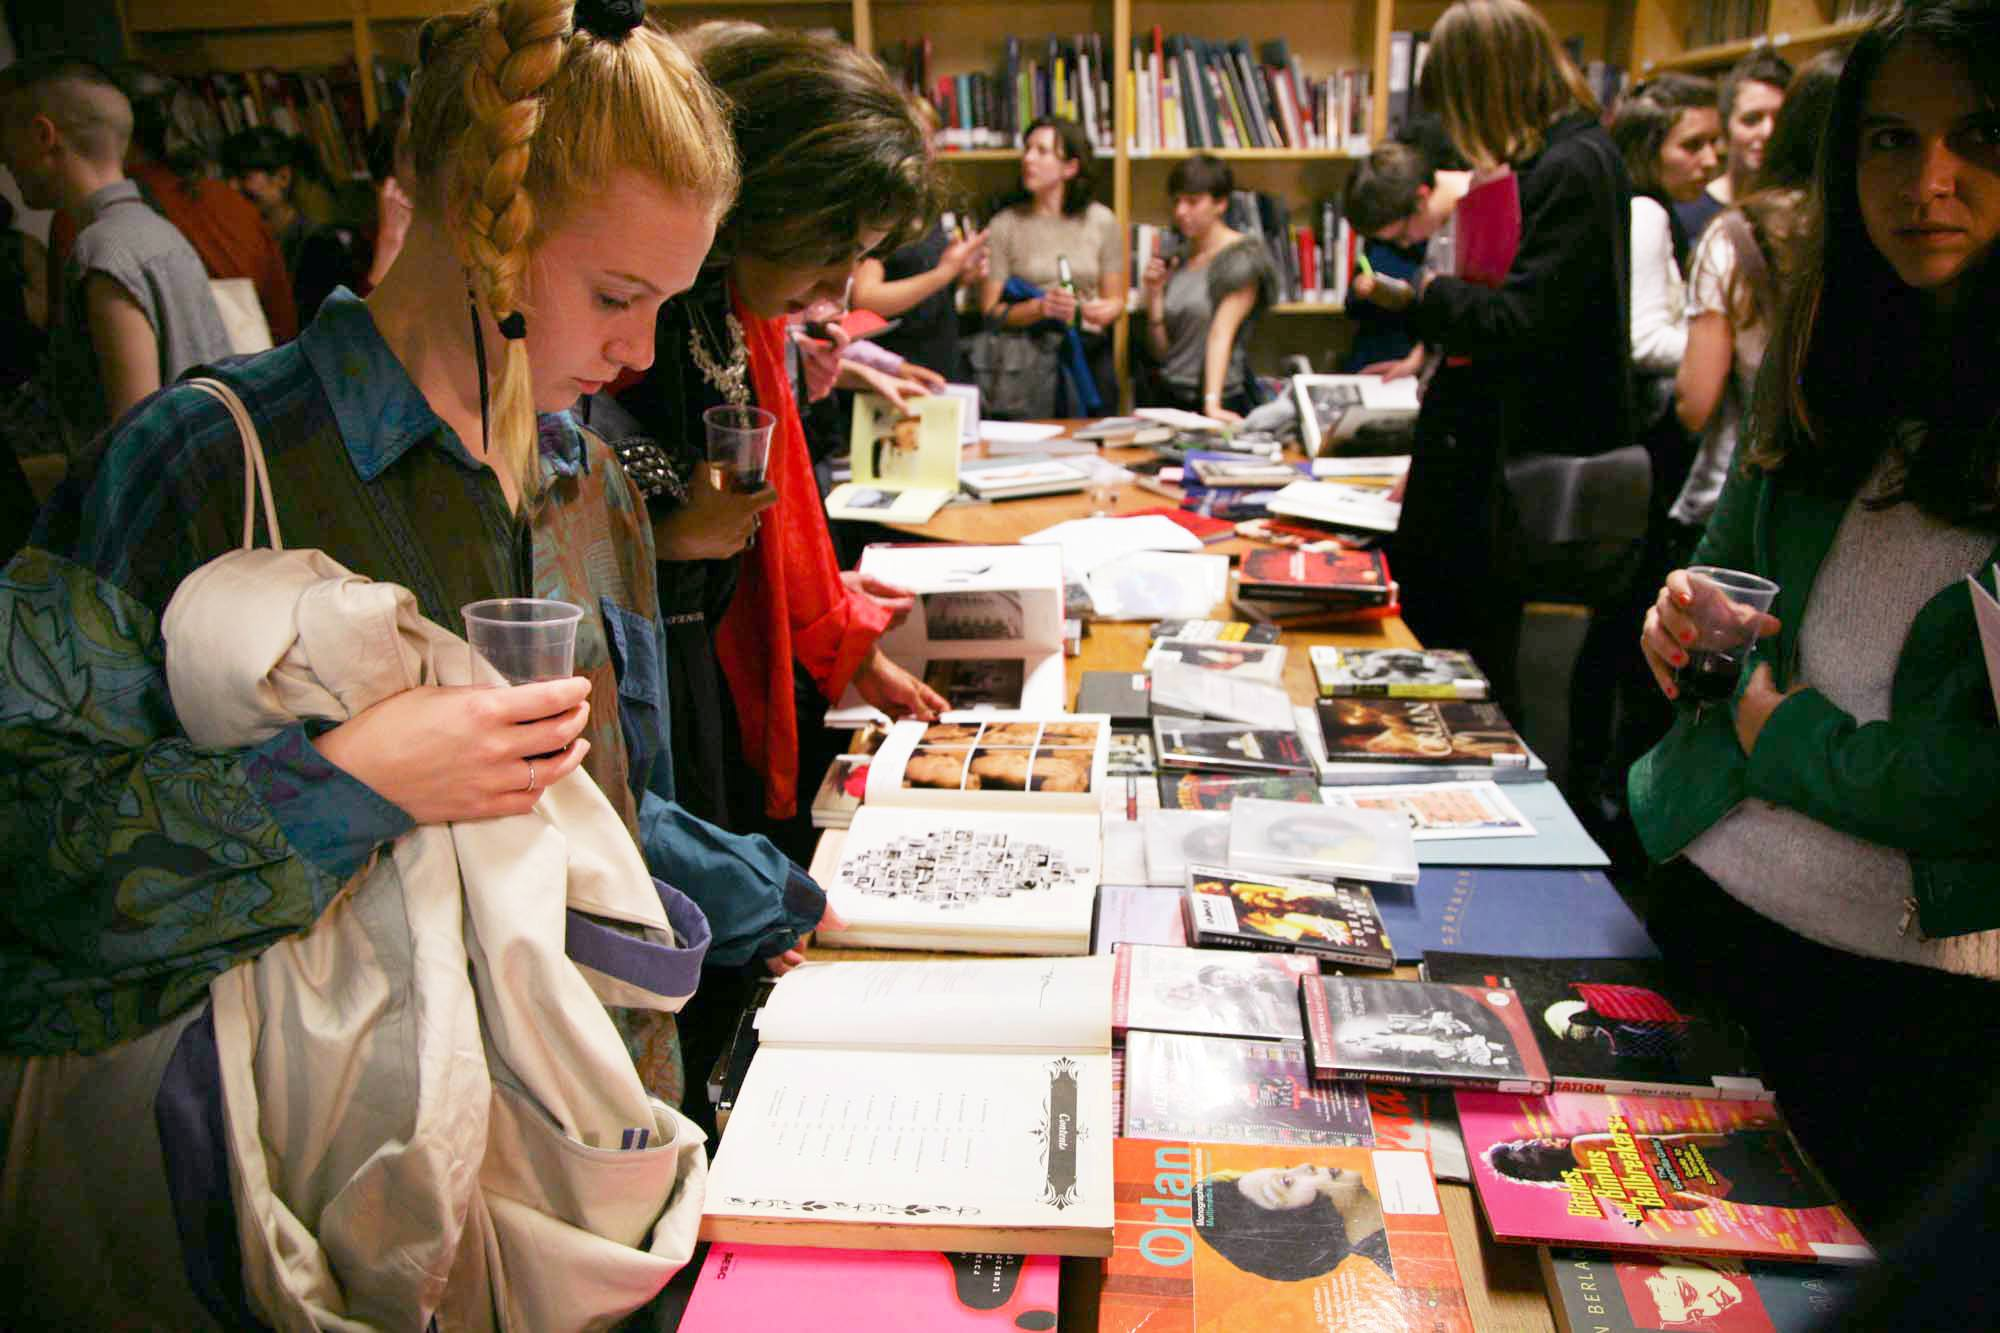 A group of Study Room users look at a table full of books in LADA's Study Room.